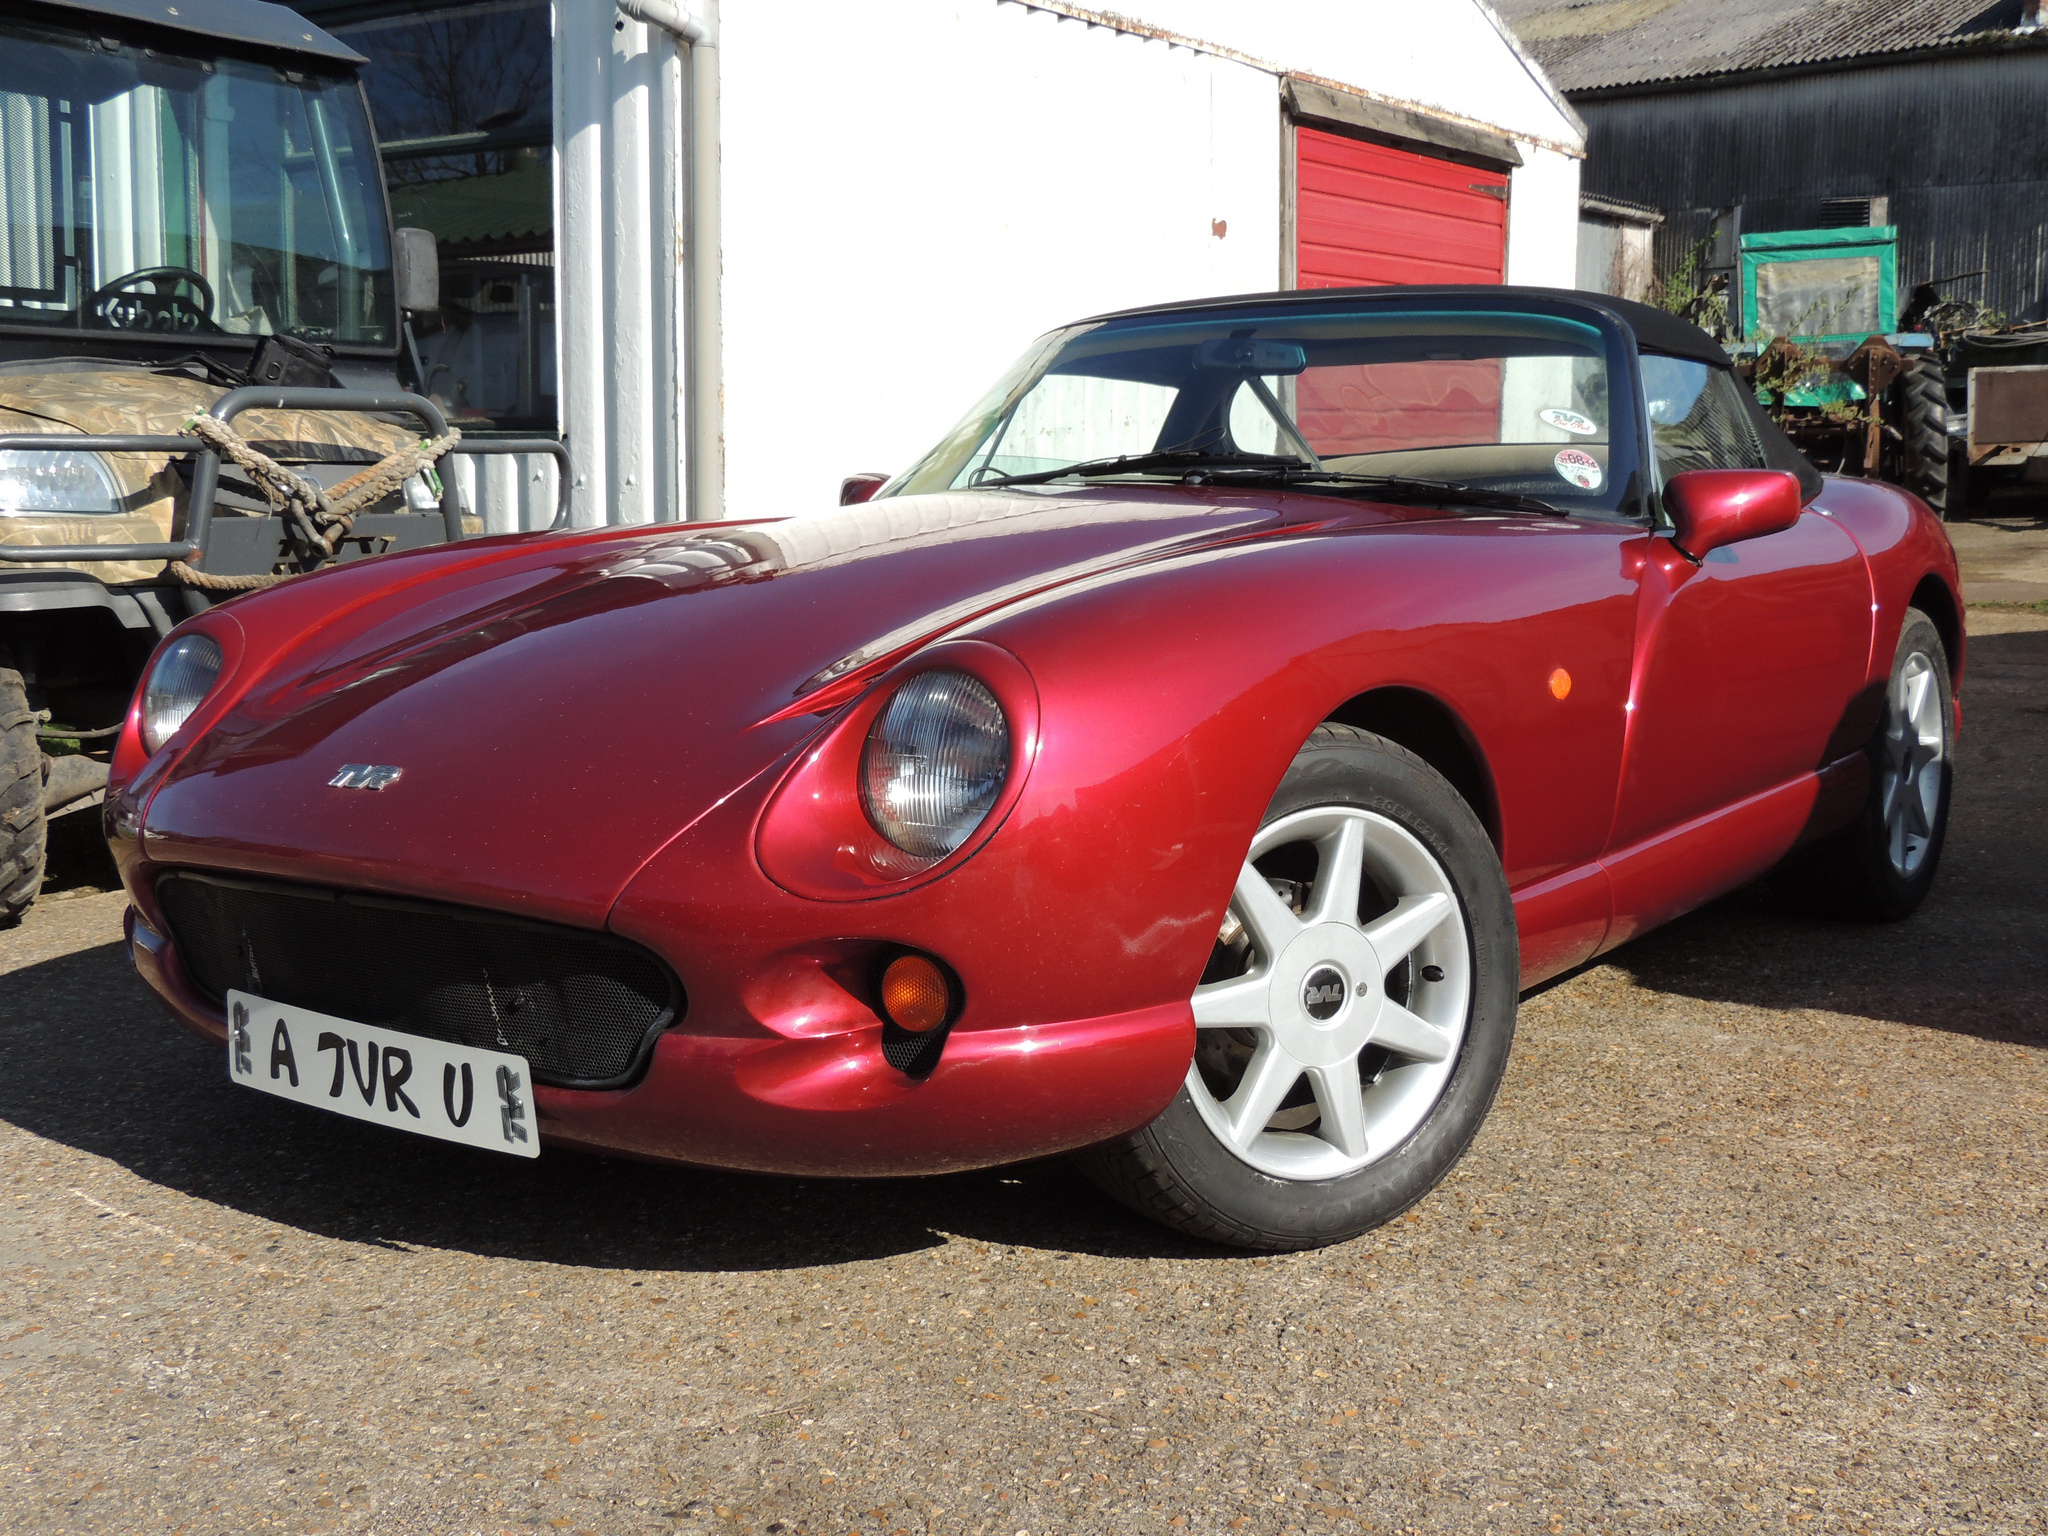 side Inspiring Tvr Griffith Wheel Nut torque Cars Trend